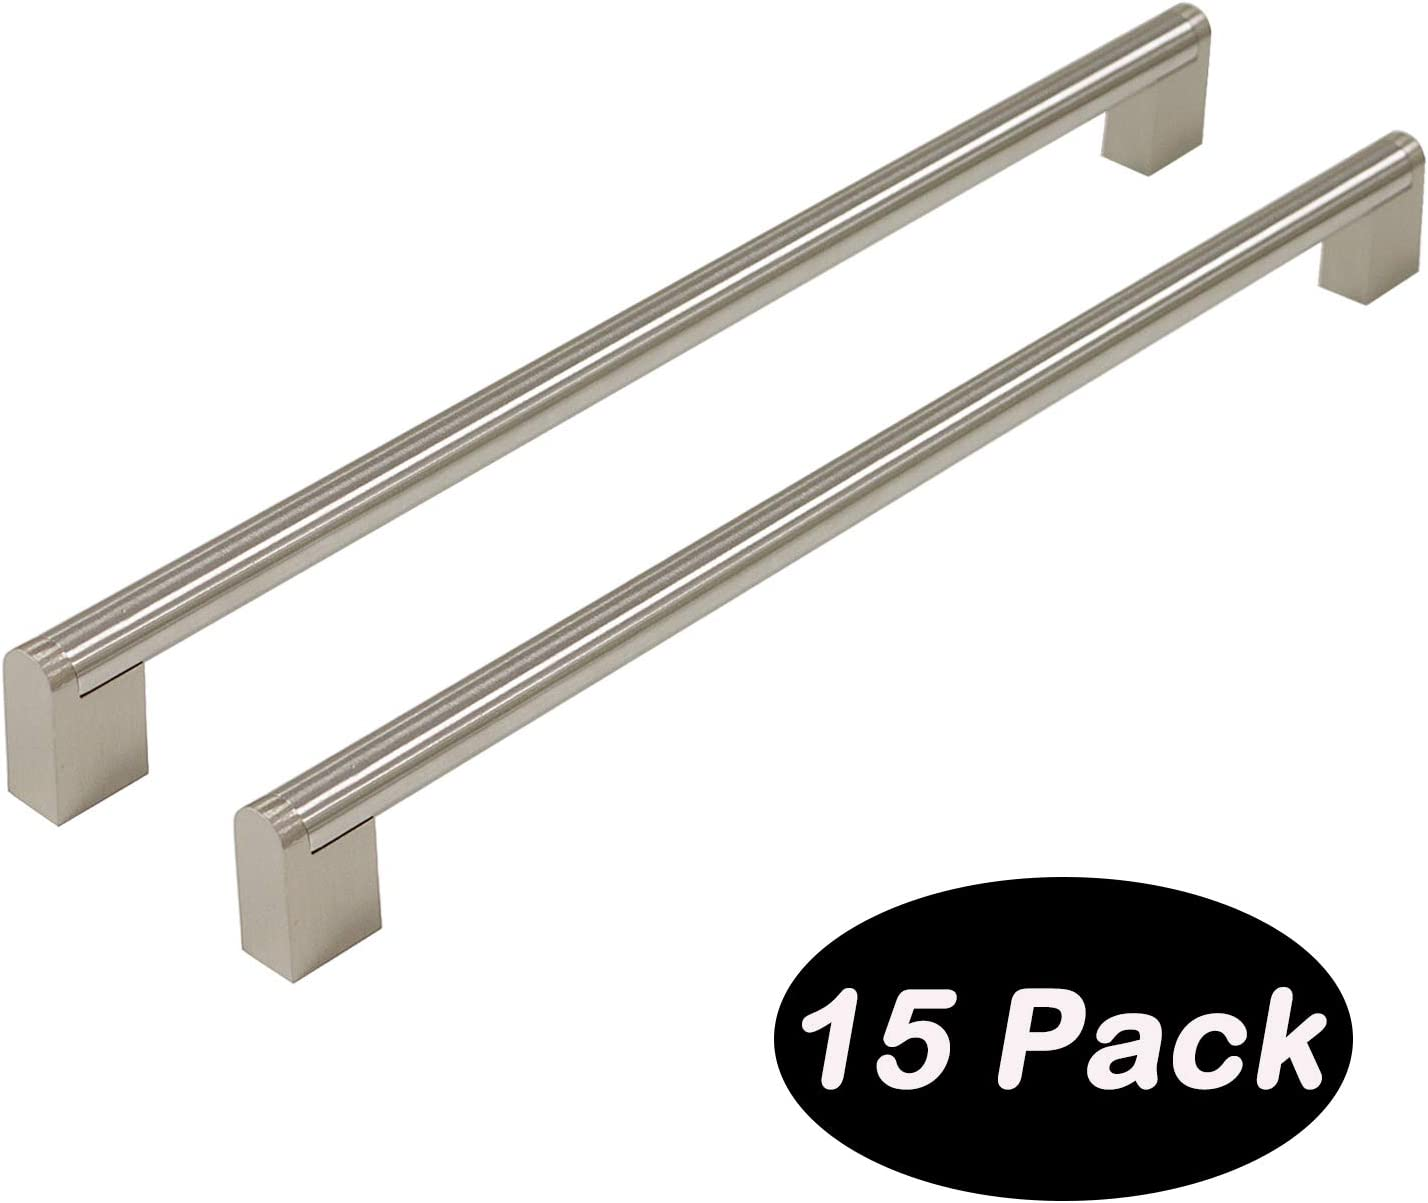 14-2//5inch 12-4//5inch 1 Pack 320mm Brushed Nickel Hole Centers Diameter 14mm Stainless Steel Boss Bar Kitchen Cabinet Door Handles and Pulls Cabinet Knobs Length 360mm